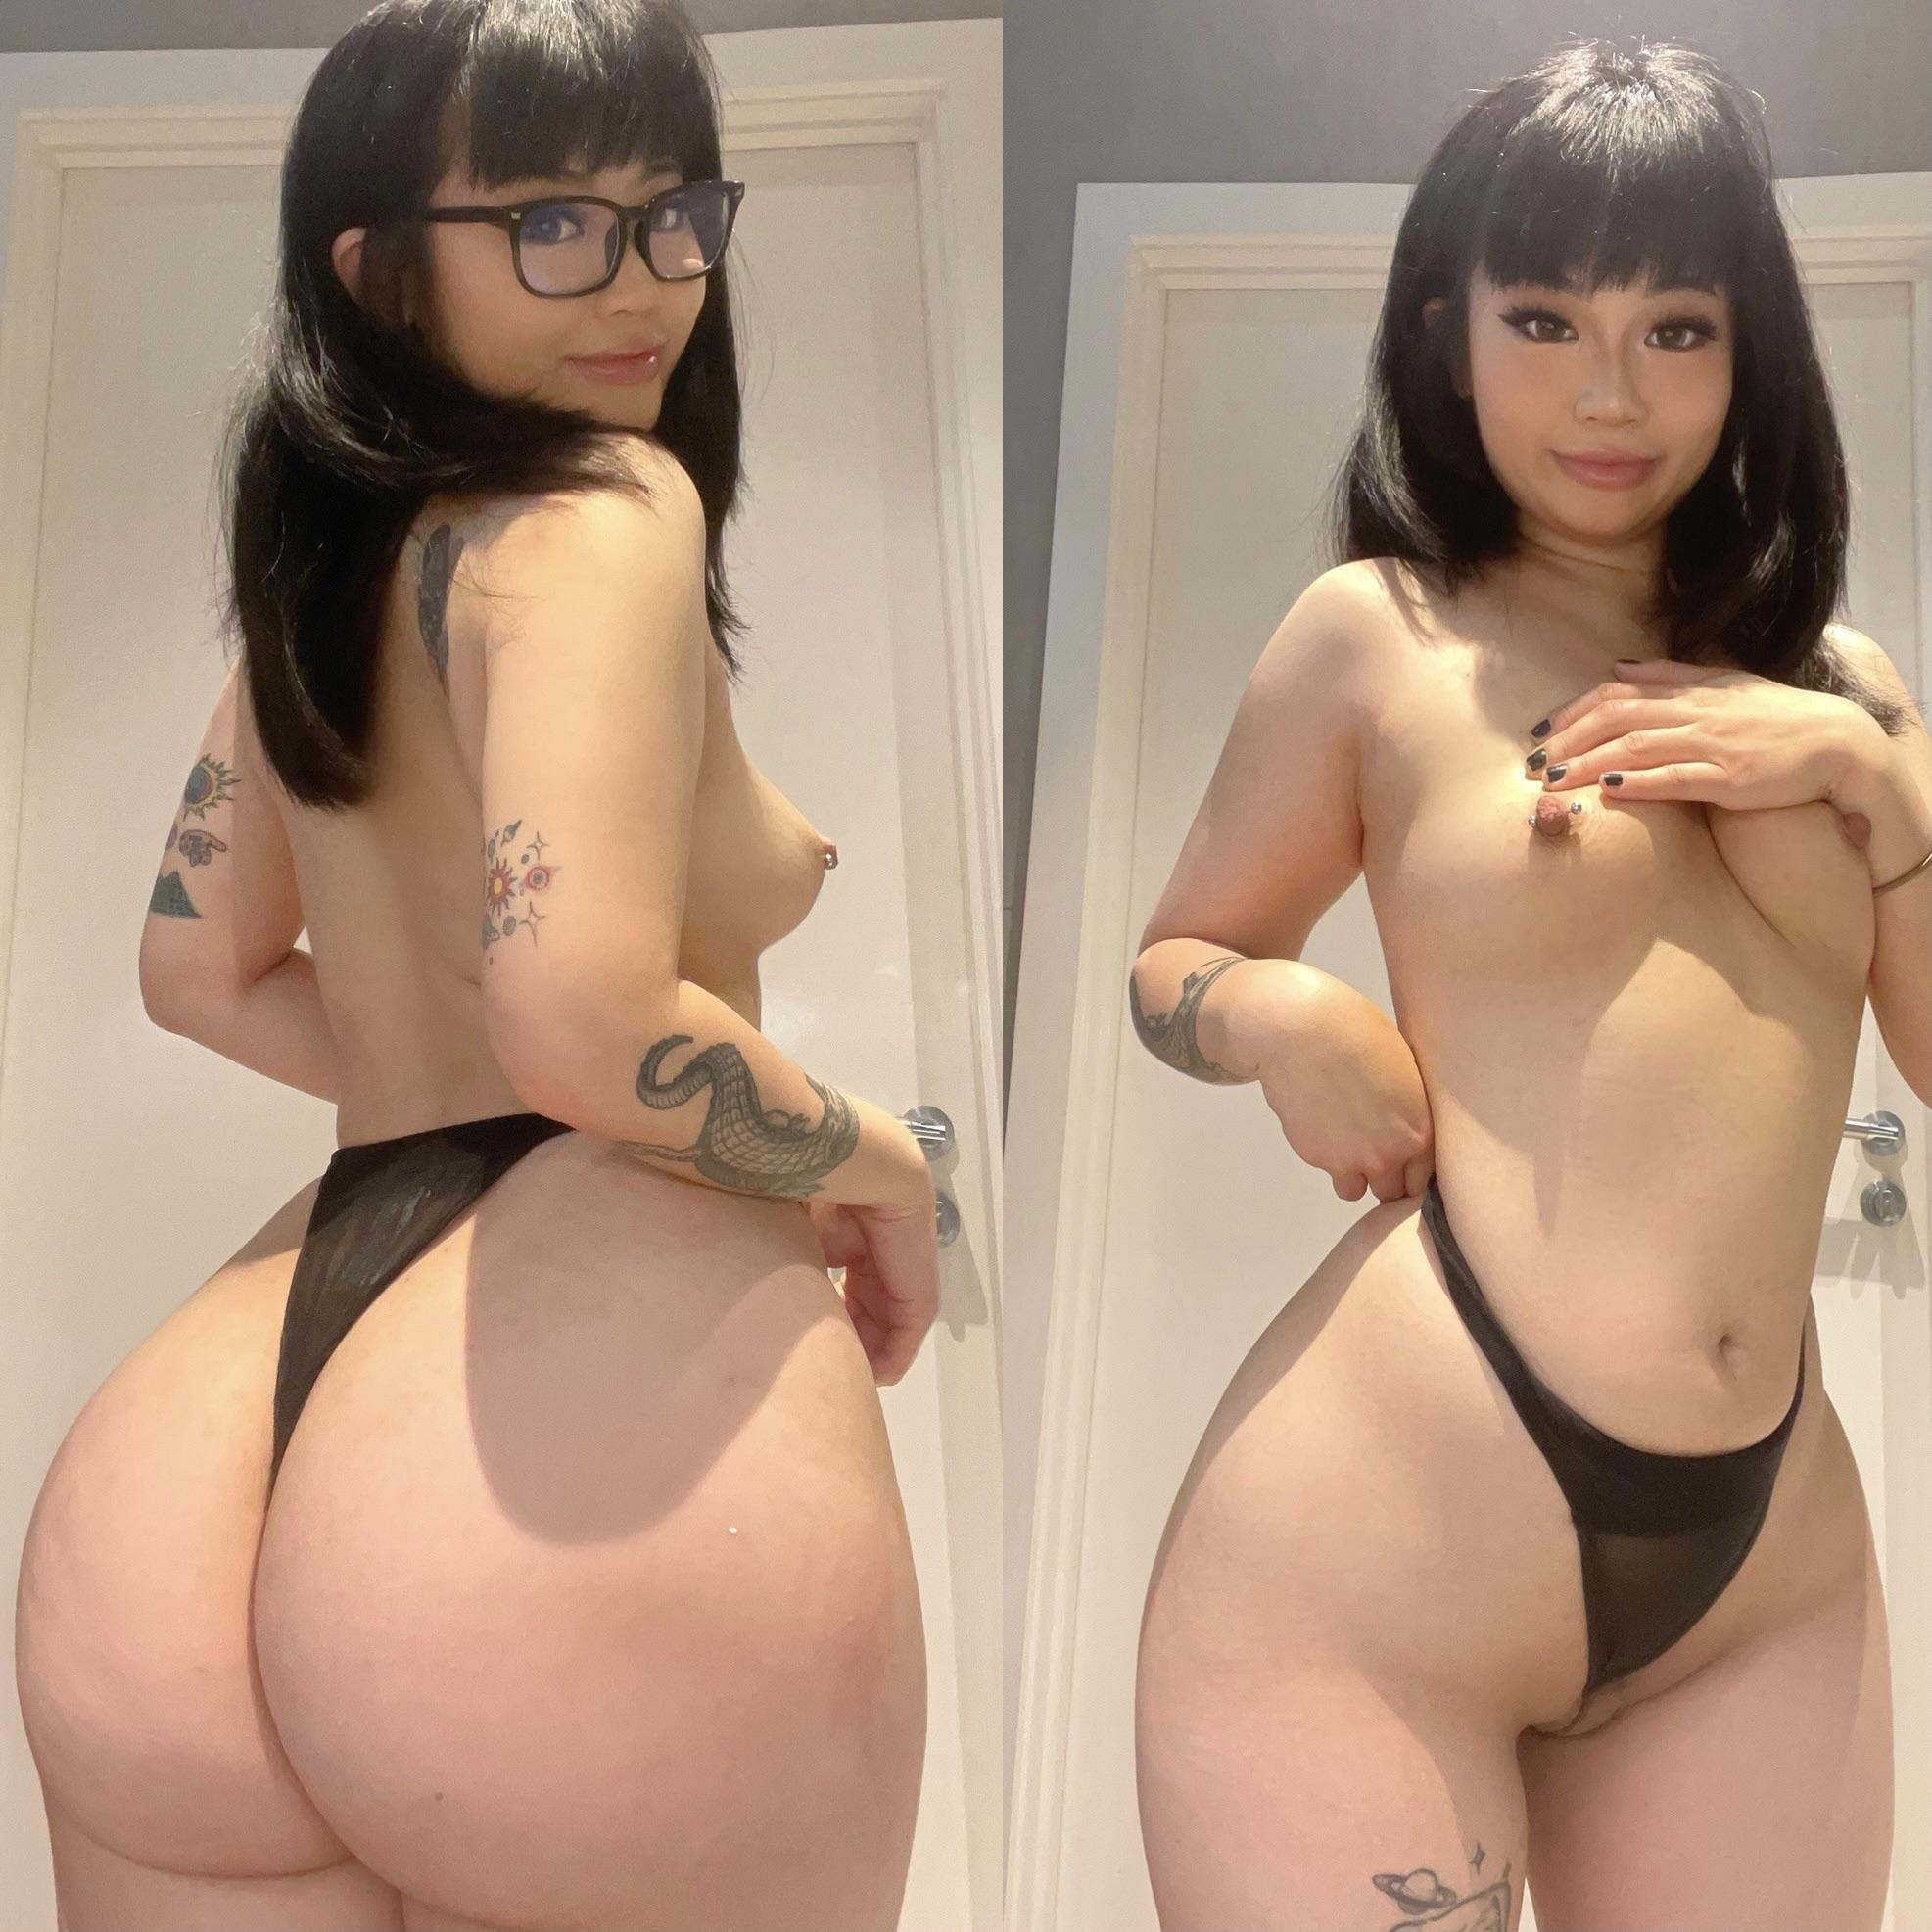 I bet I can make you cum in 5 mins, what you think?